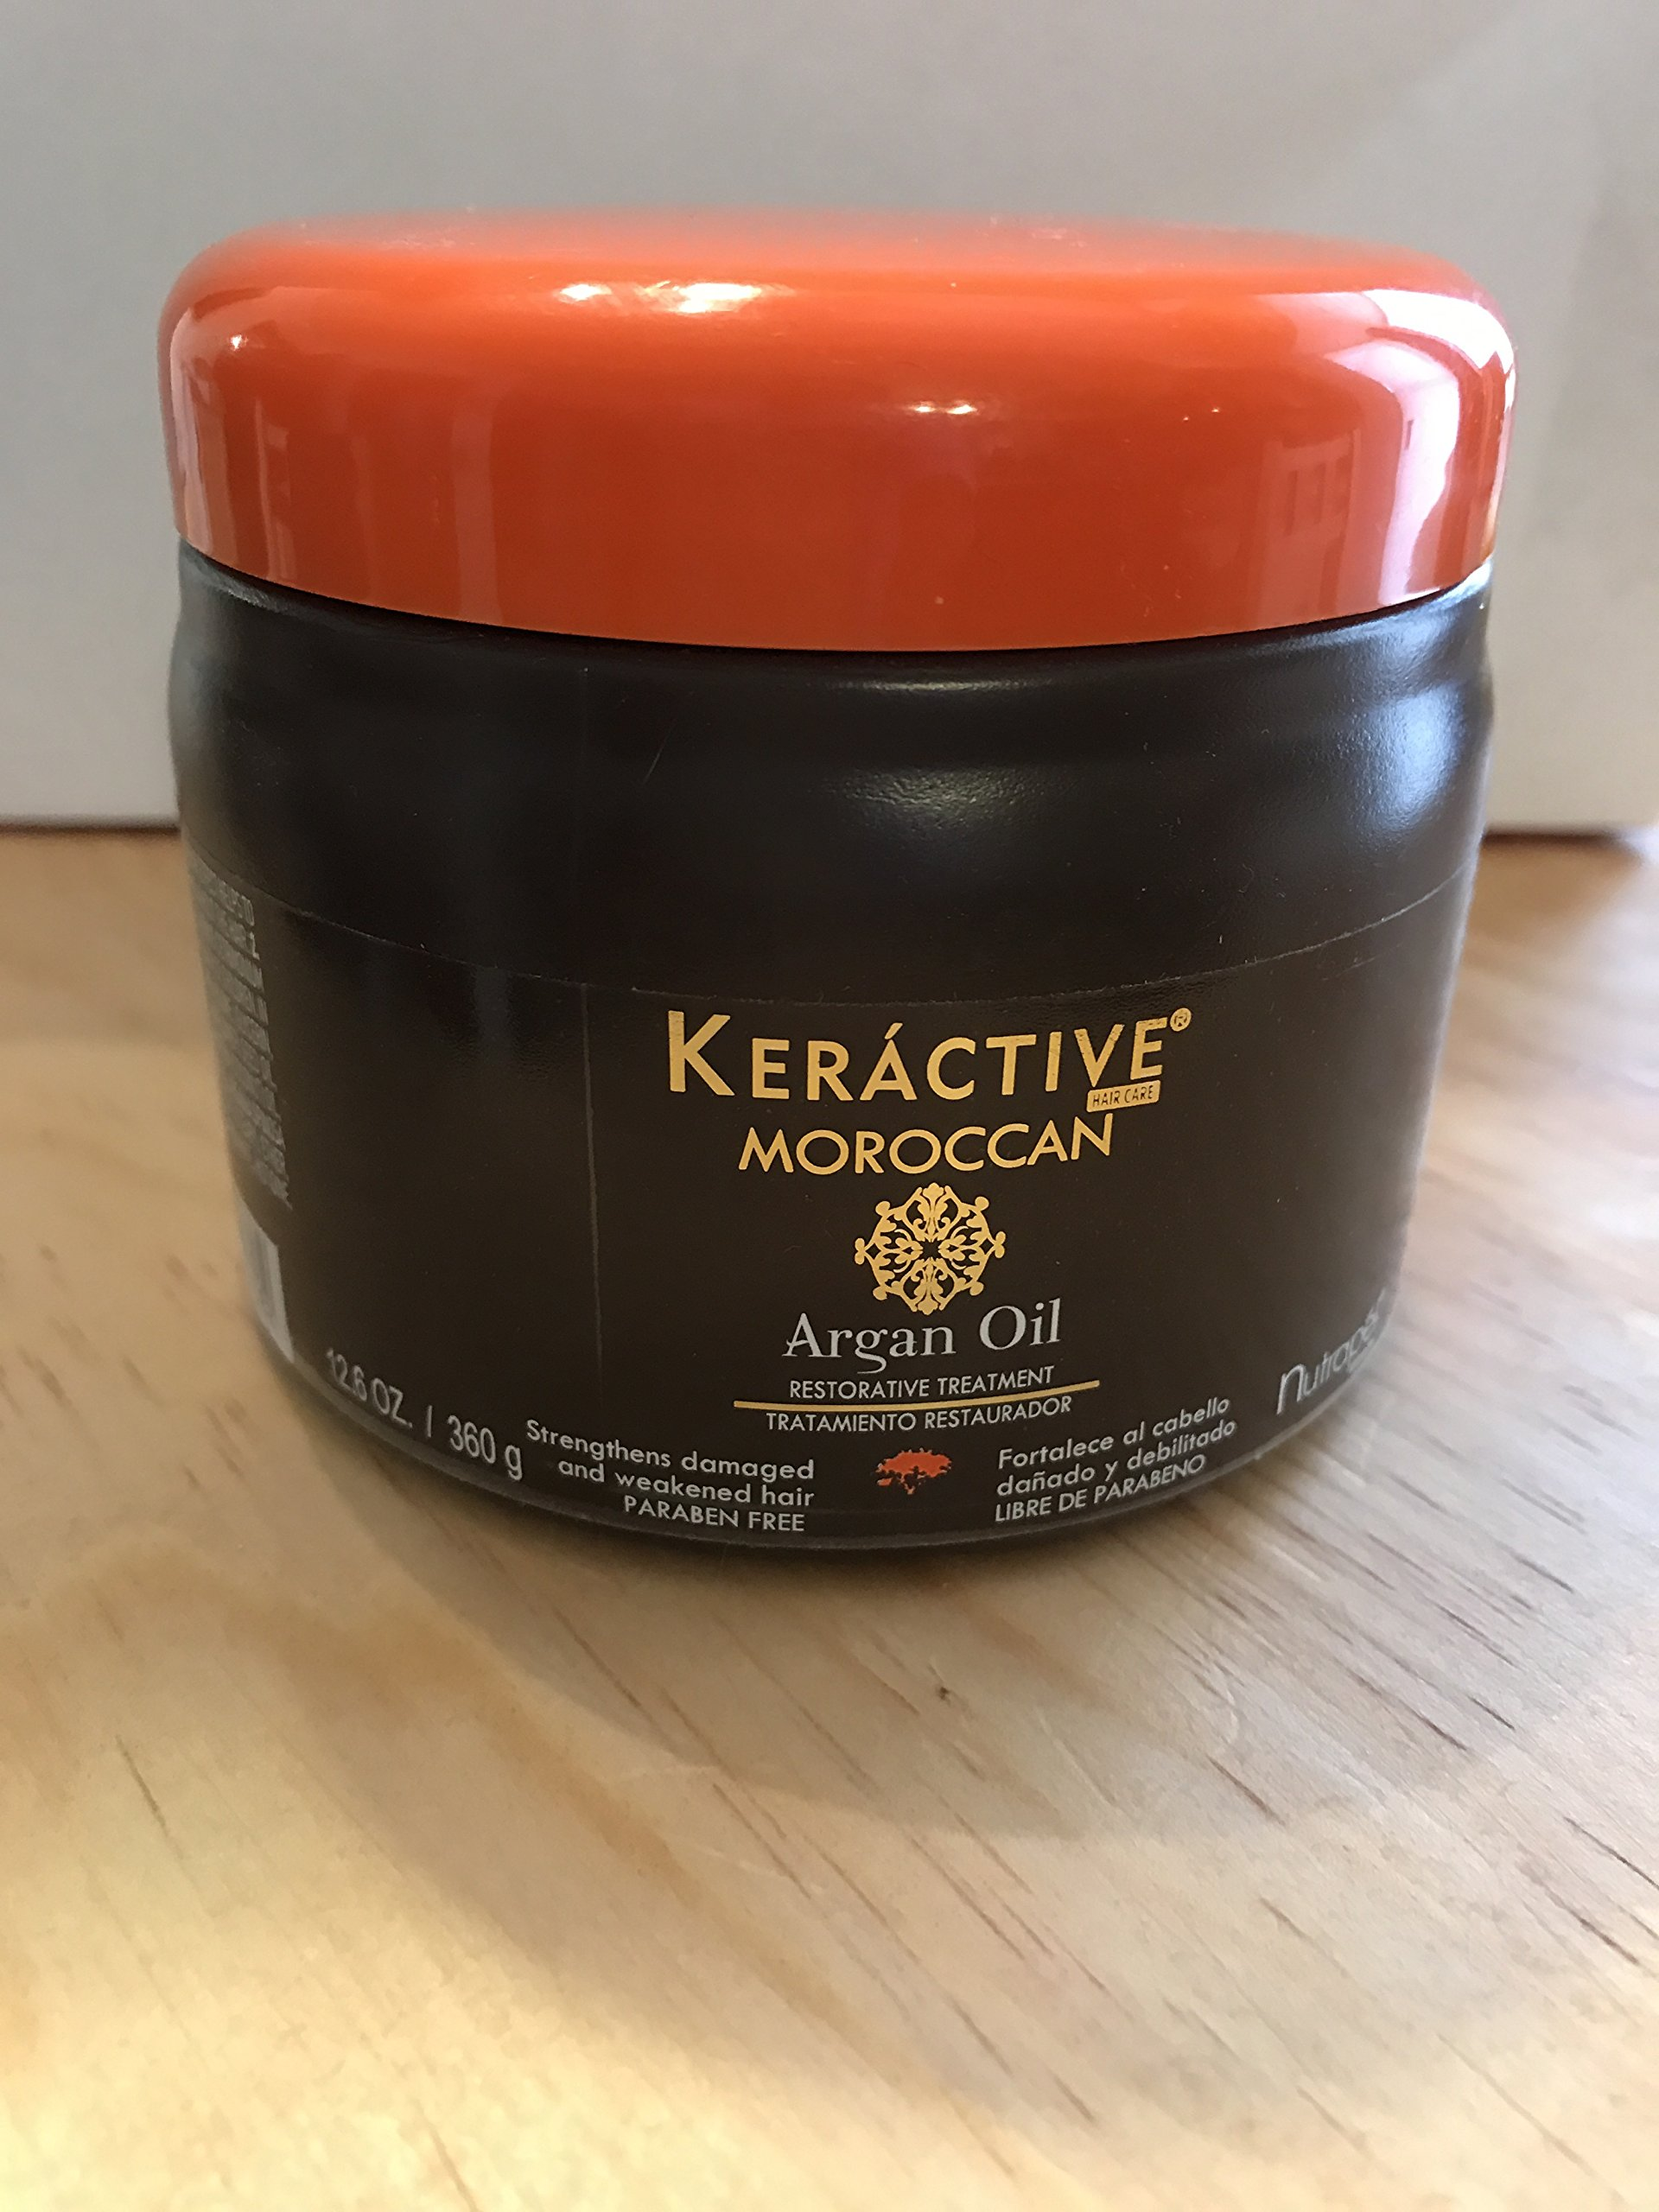 ARGAN OIL MOROCCAN KERACTIVE TREATMENT ACEITE DE ARGON CREMA TRATAMIENTO